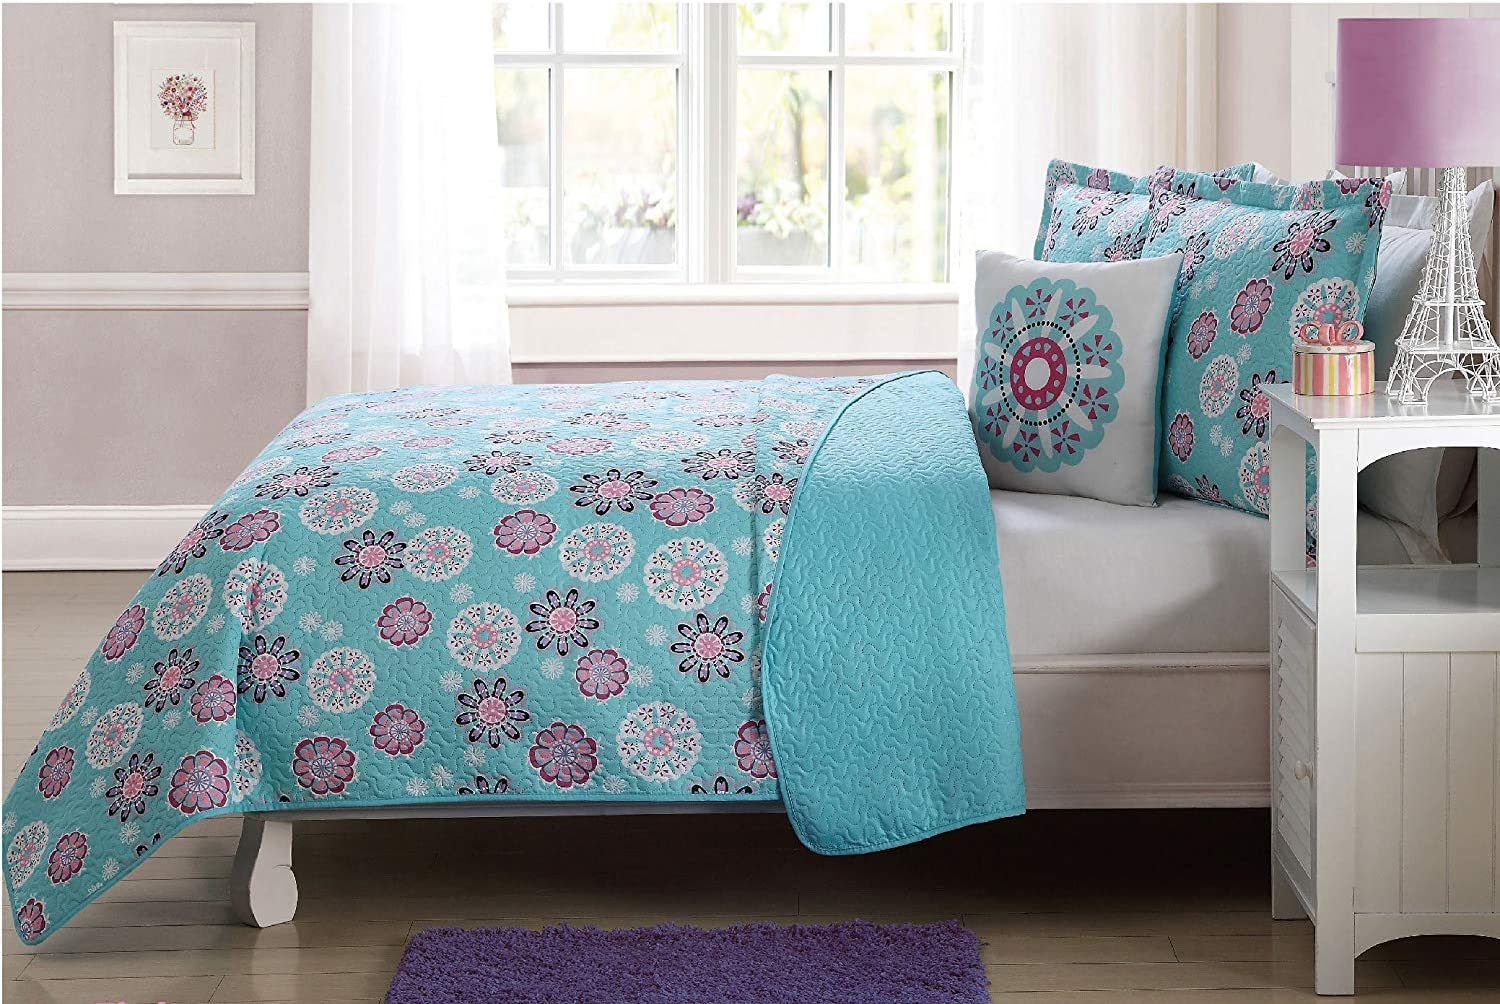 Full 4pc Bedspread Set for Girls//Teens Flakes Flowers Baby Blue White Pink Lavender New